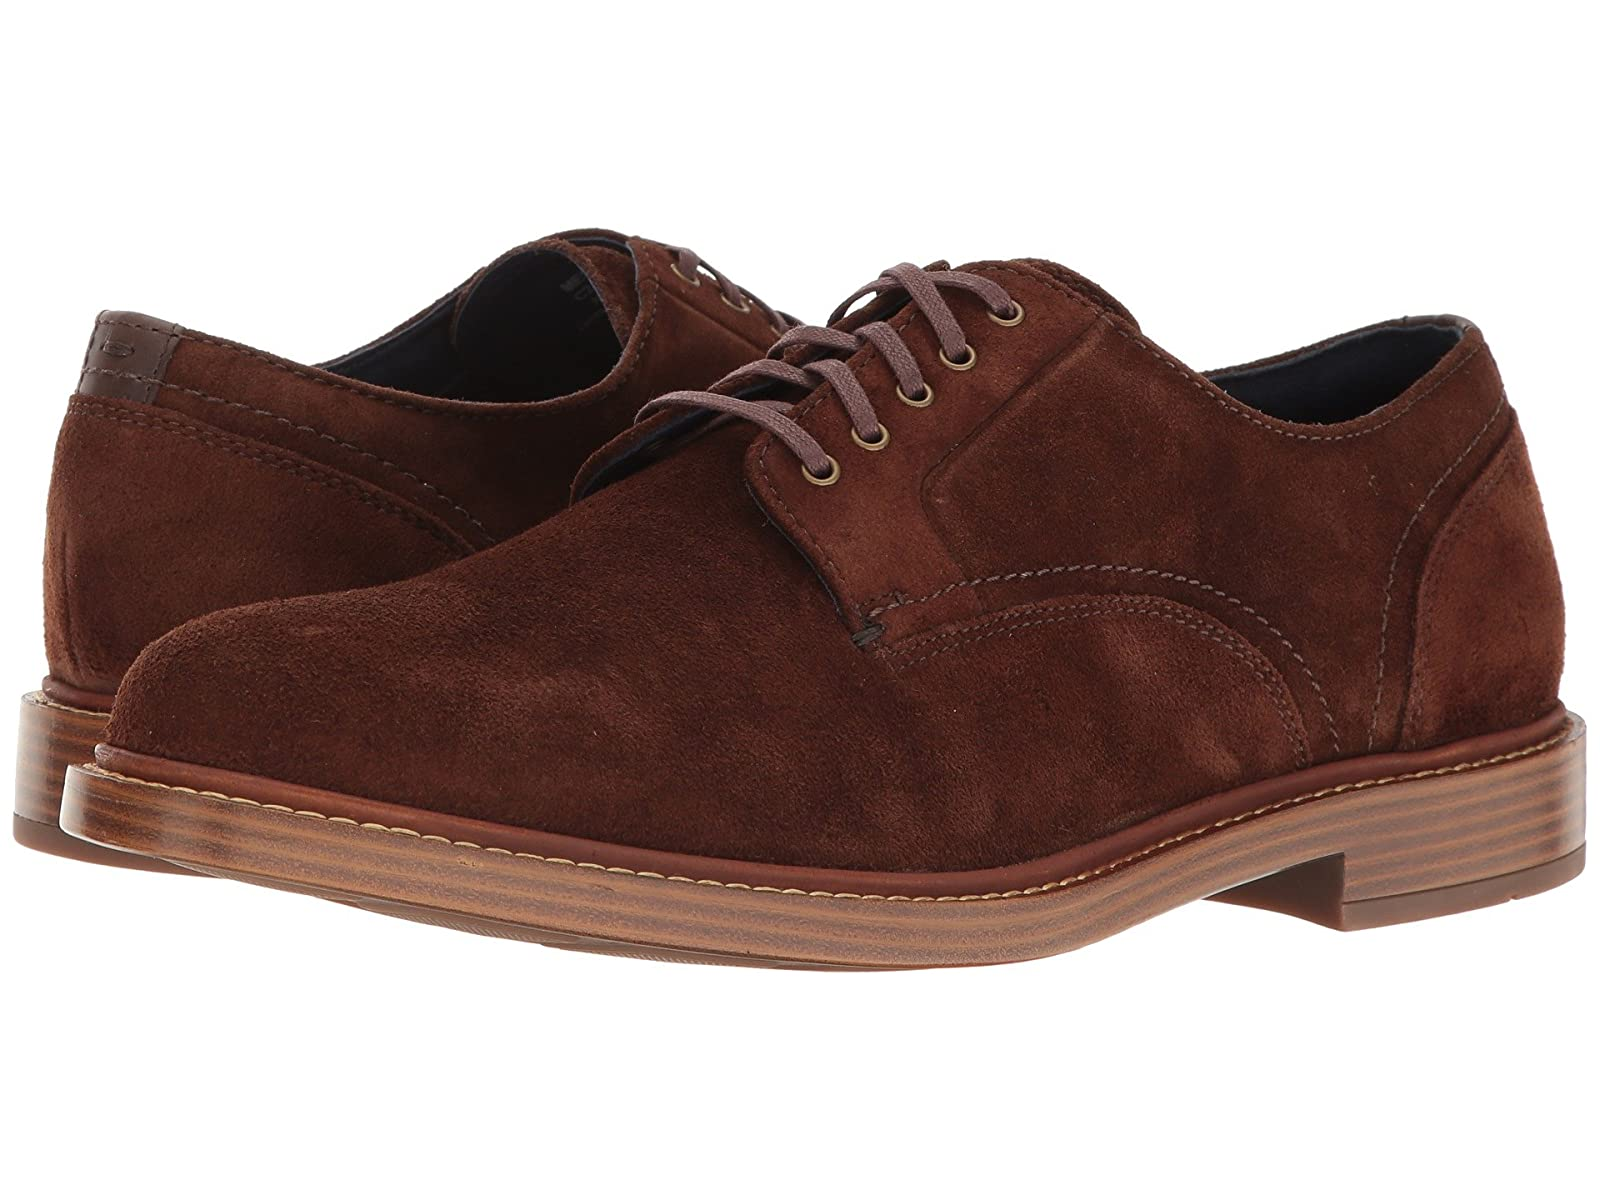 Cole Haan Adams Plain OxCheap and distinctive eye-catching shoes